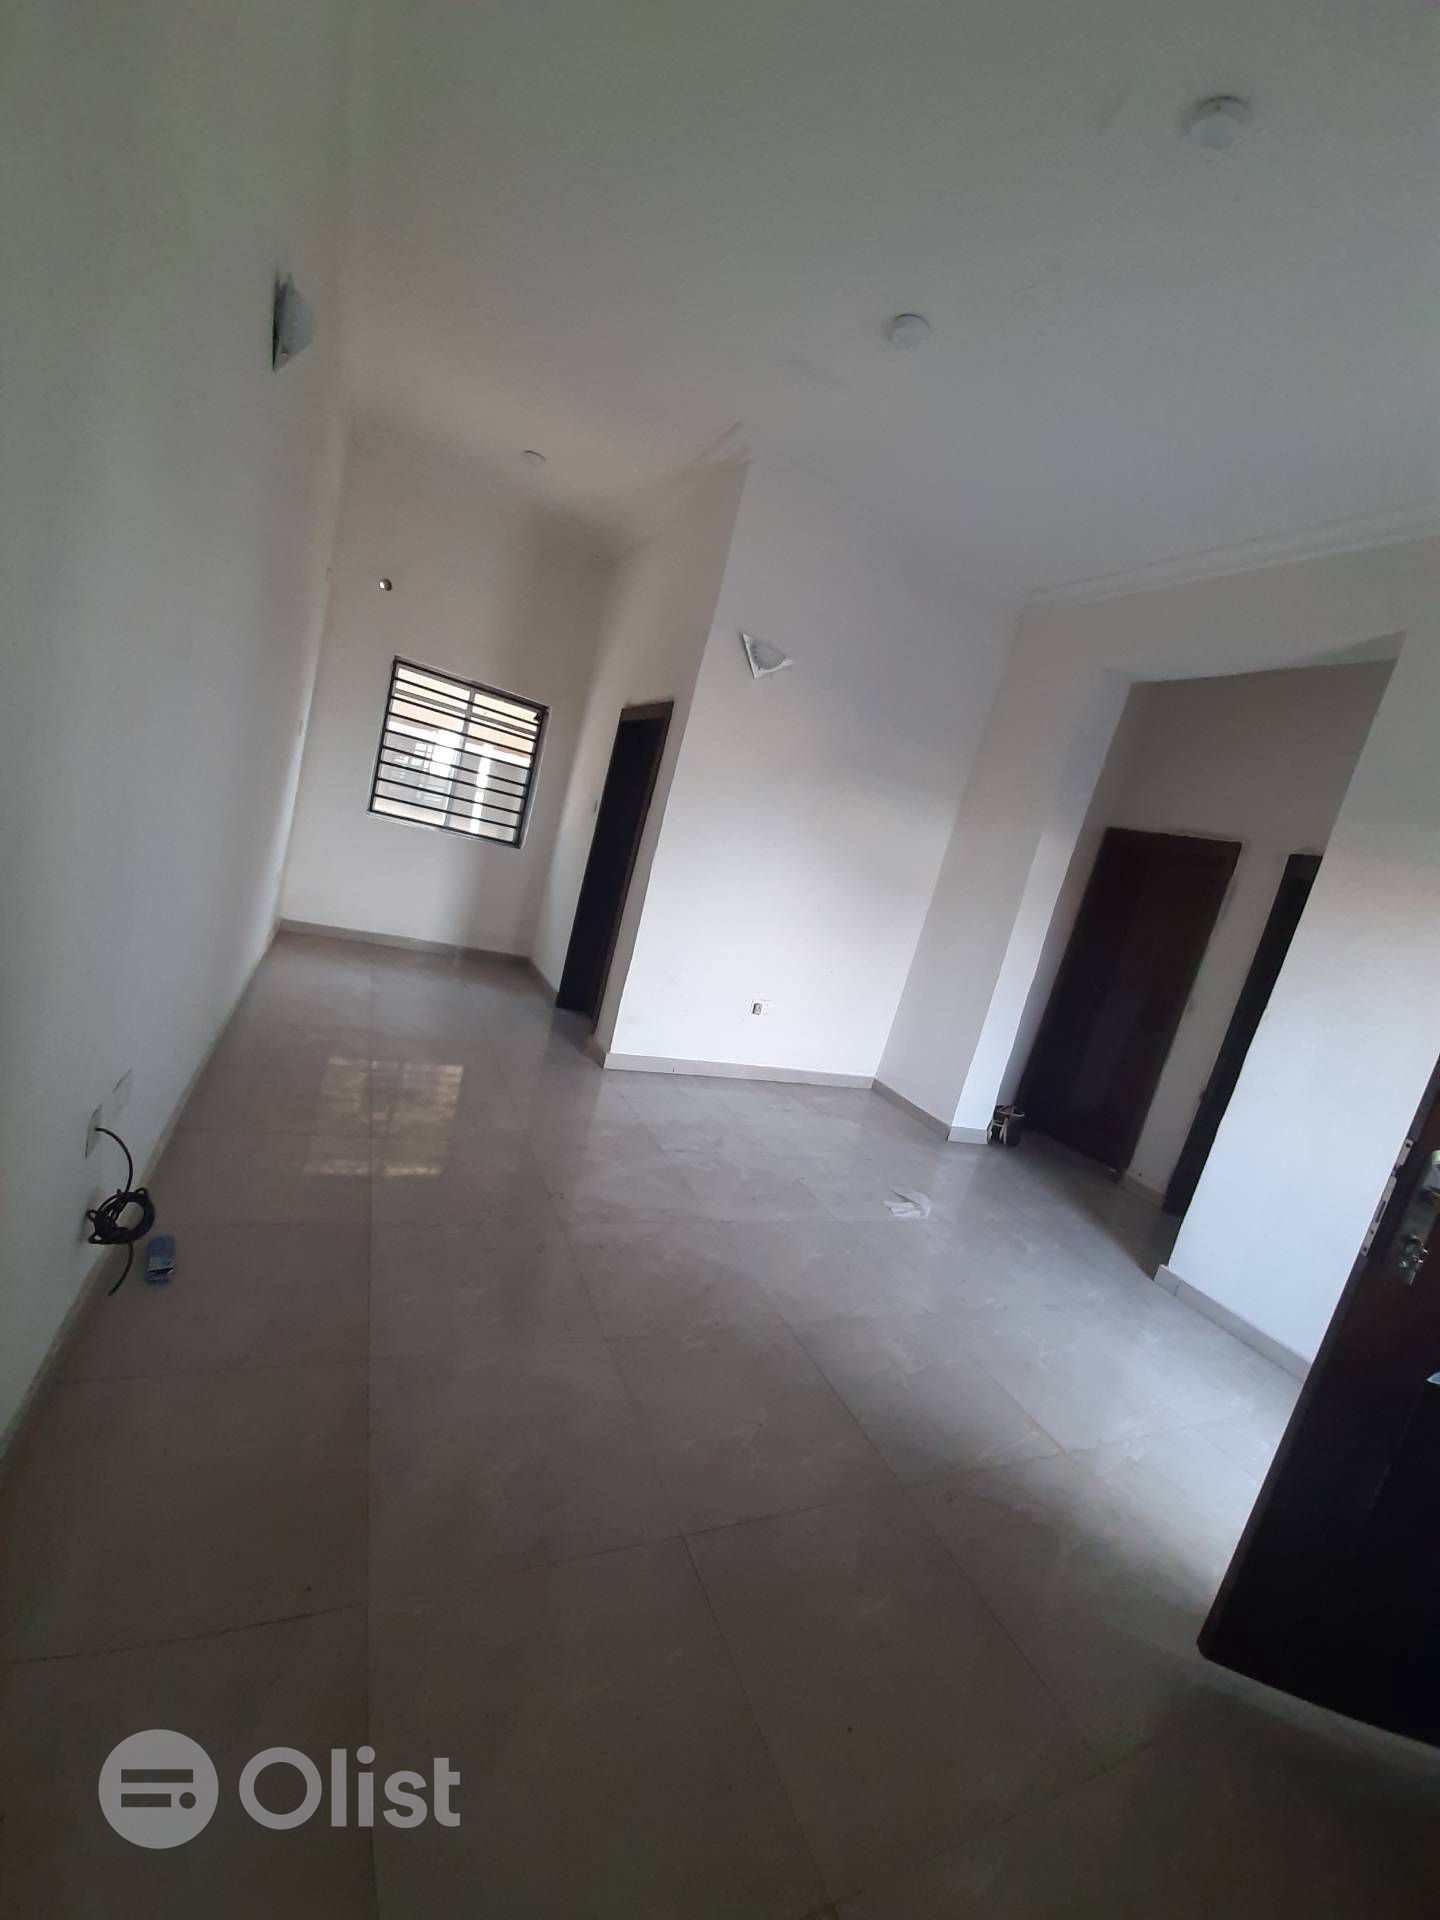 3 Bedrooms Flat Mini Flat House For Rent In Amuwo Odofin Lagos By Oplace Account 14 Olist Nigeria